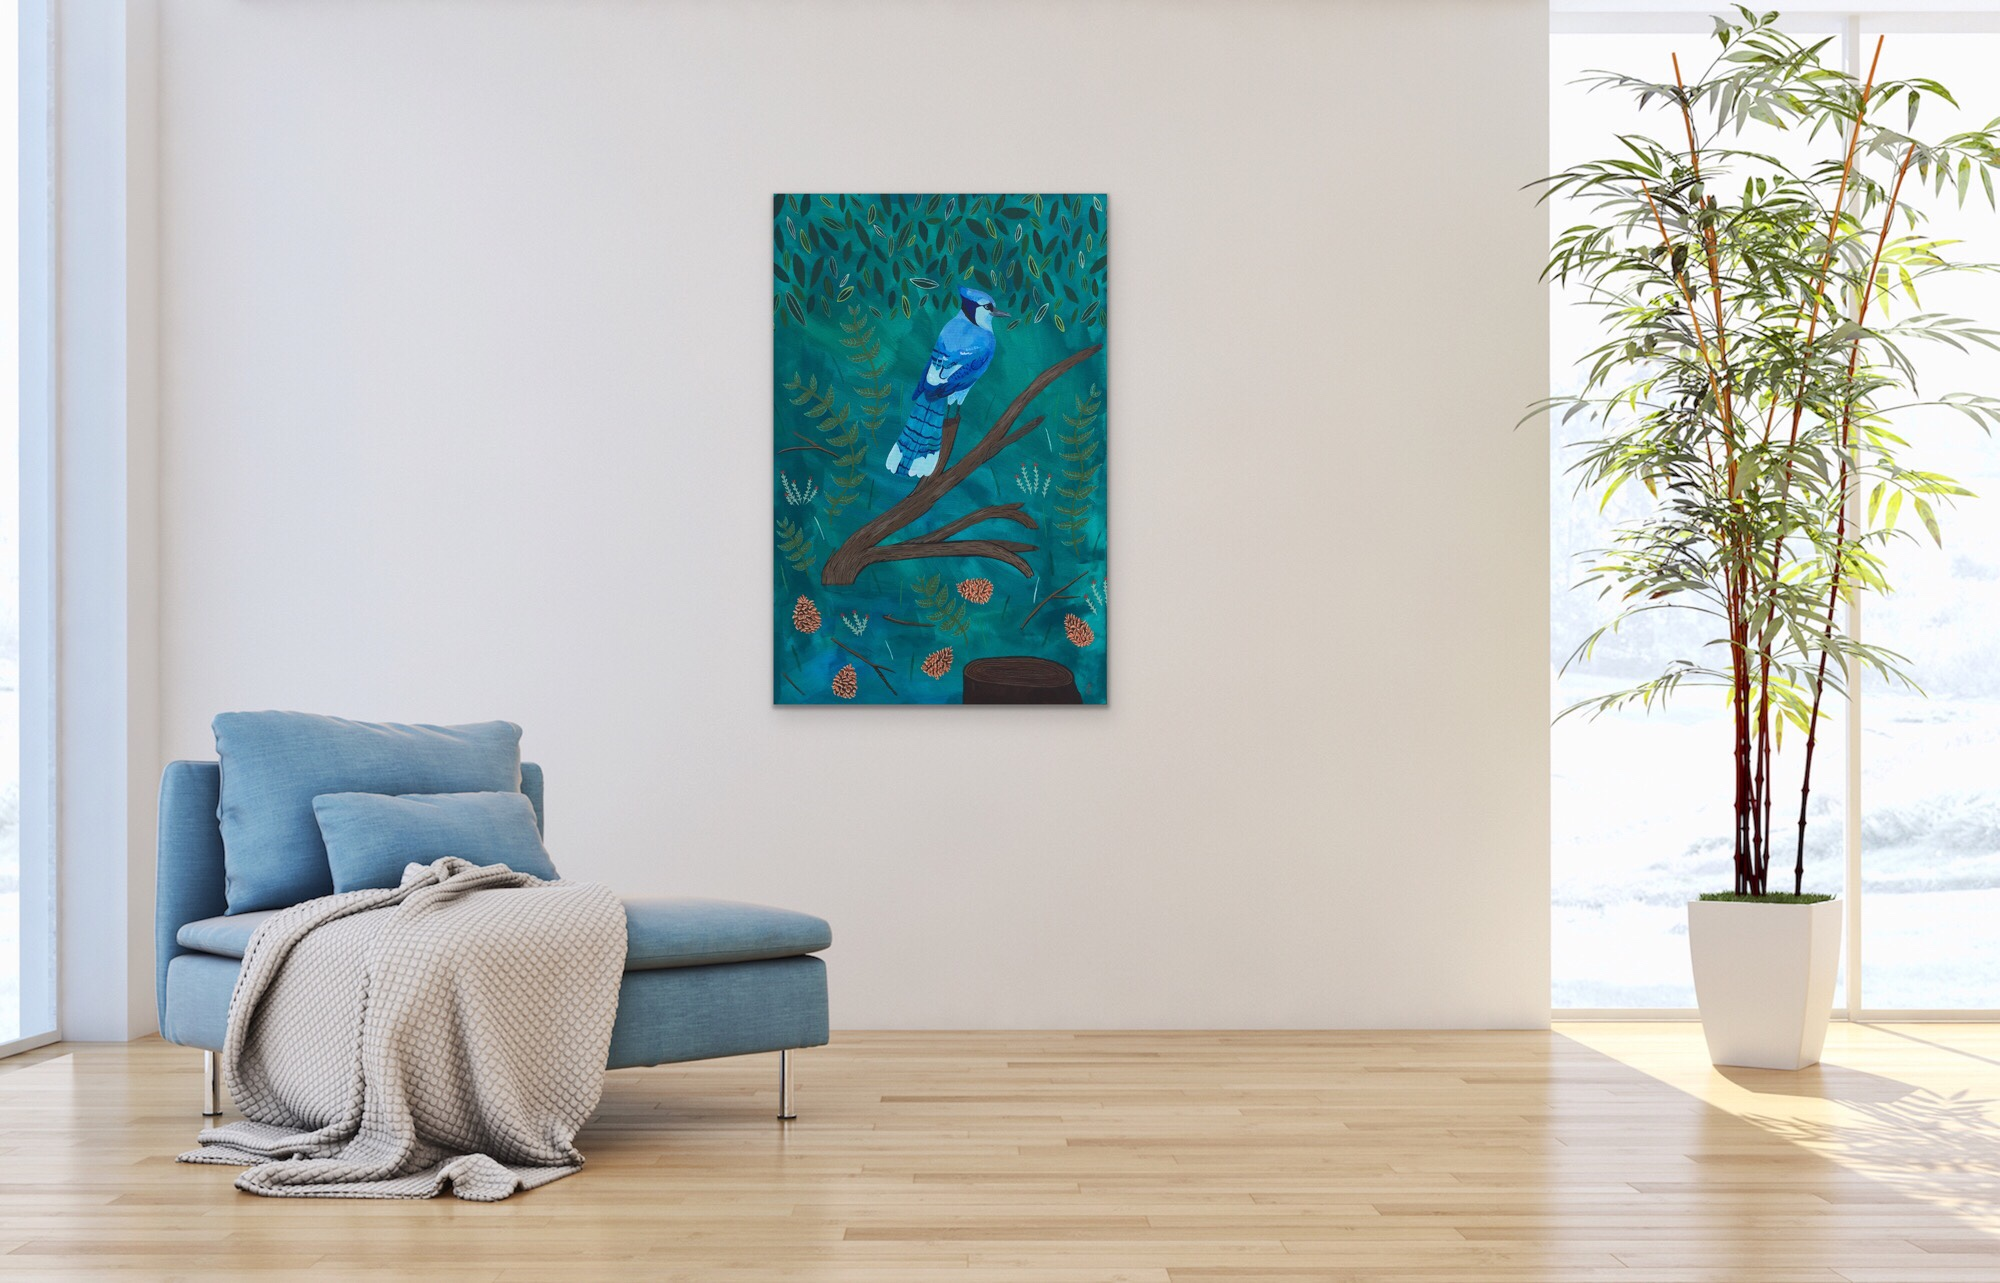 This Blue Jay painting (by June Jewell) is already sold, but I thought I'd give another sample of more to come with app…& if you're interested in a painting of a blue jay, I do commissions. ;)